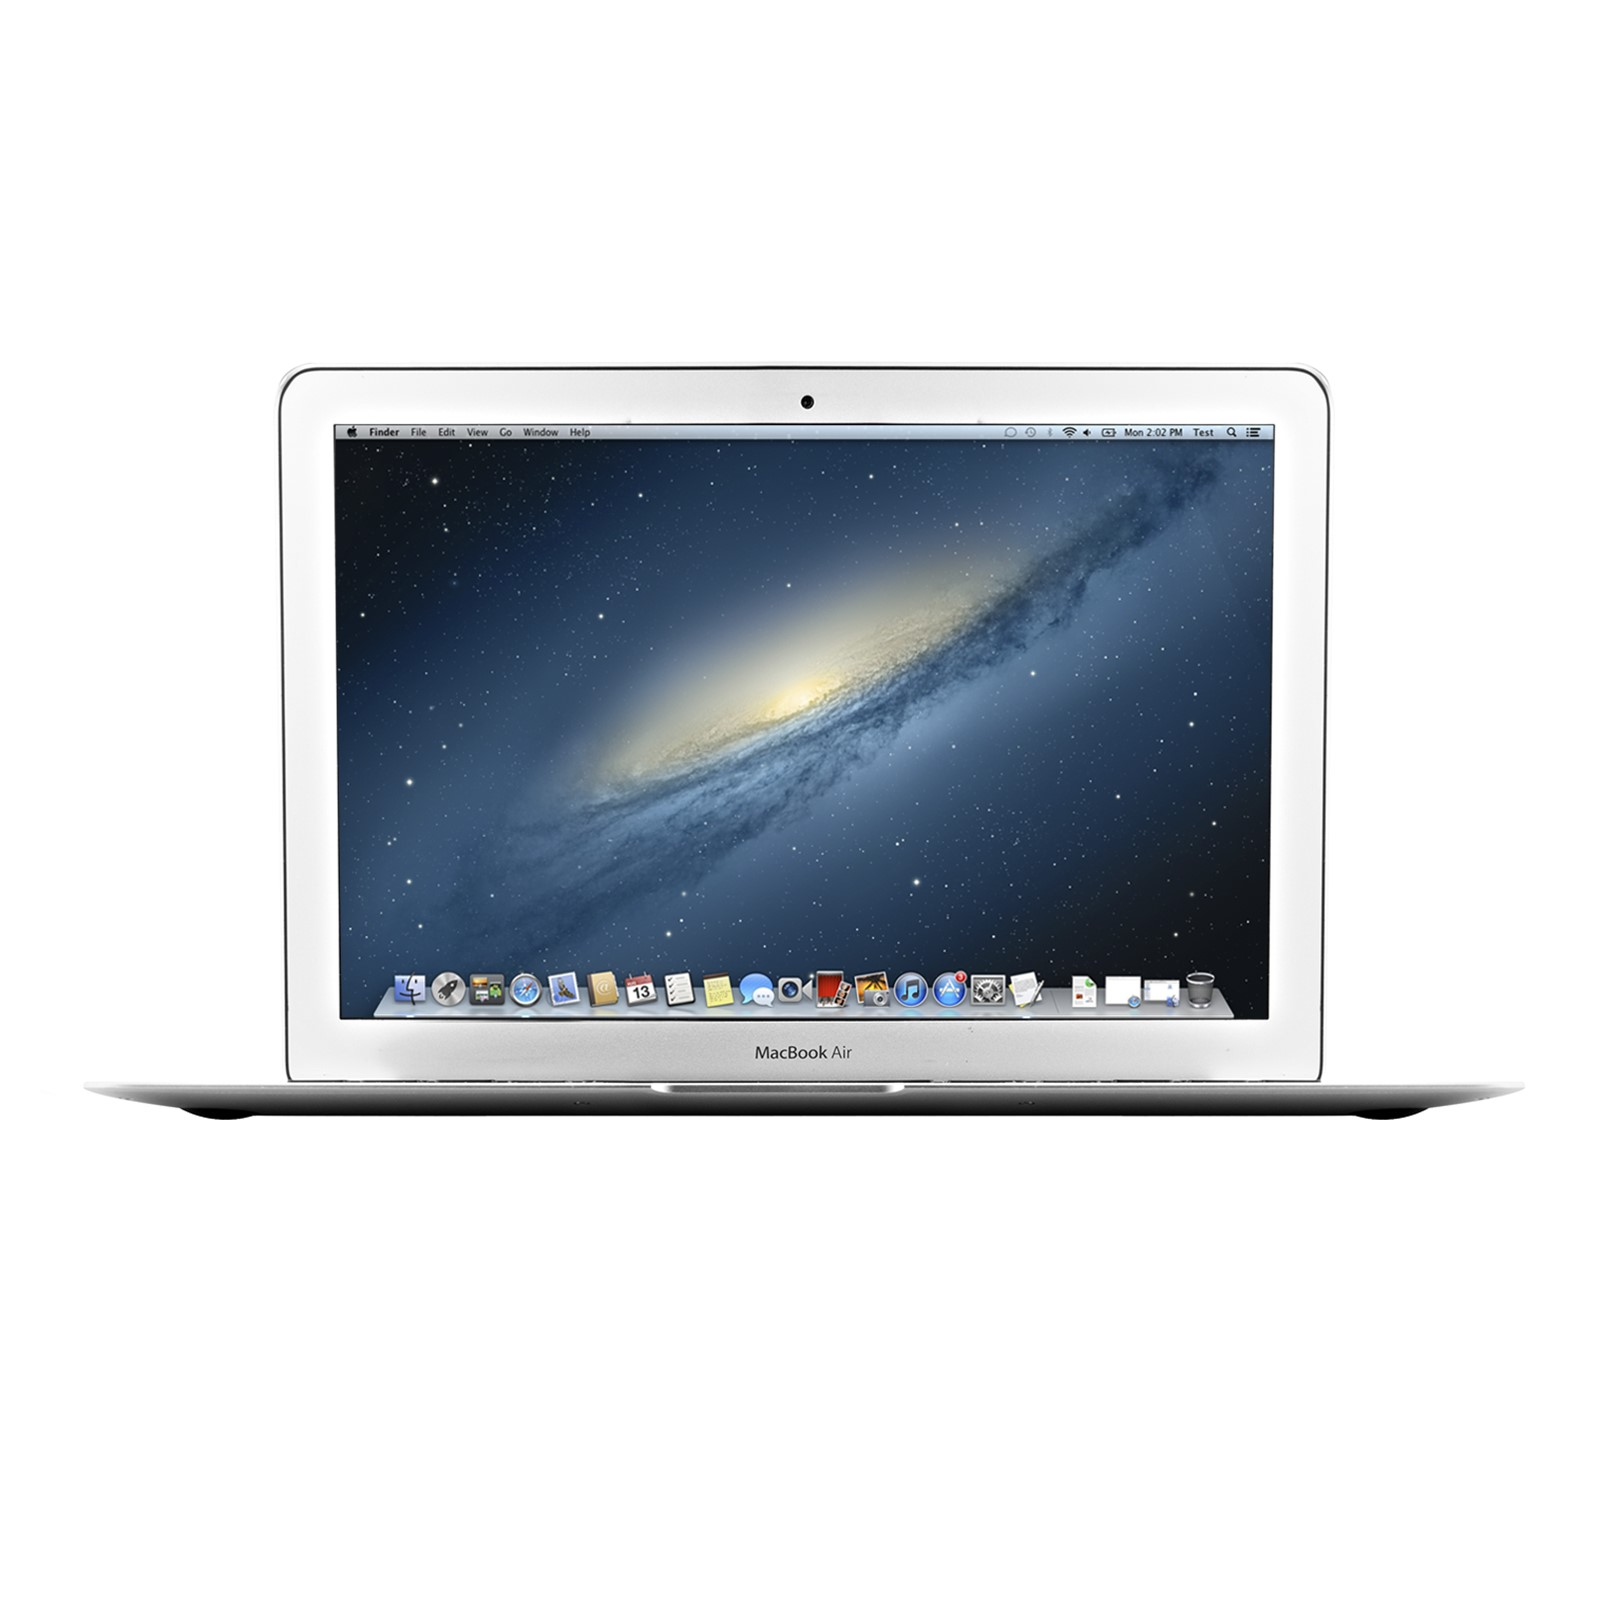 apple macbook air 13 1 3 ghz 128 gb ssd 4gb yosemite. Black Bedroom Furniture Sets. Home Design Ideas